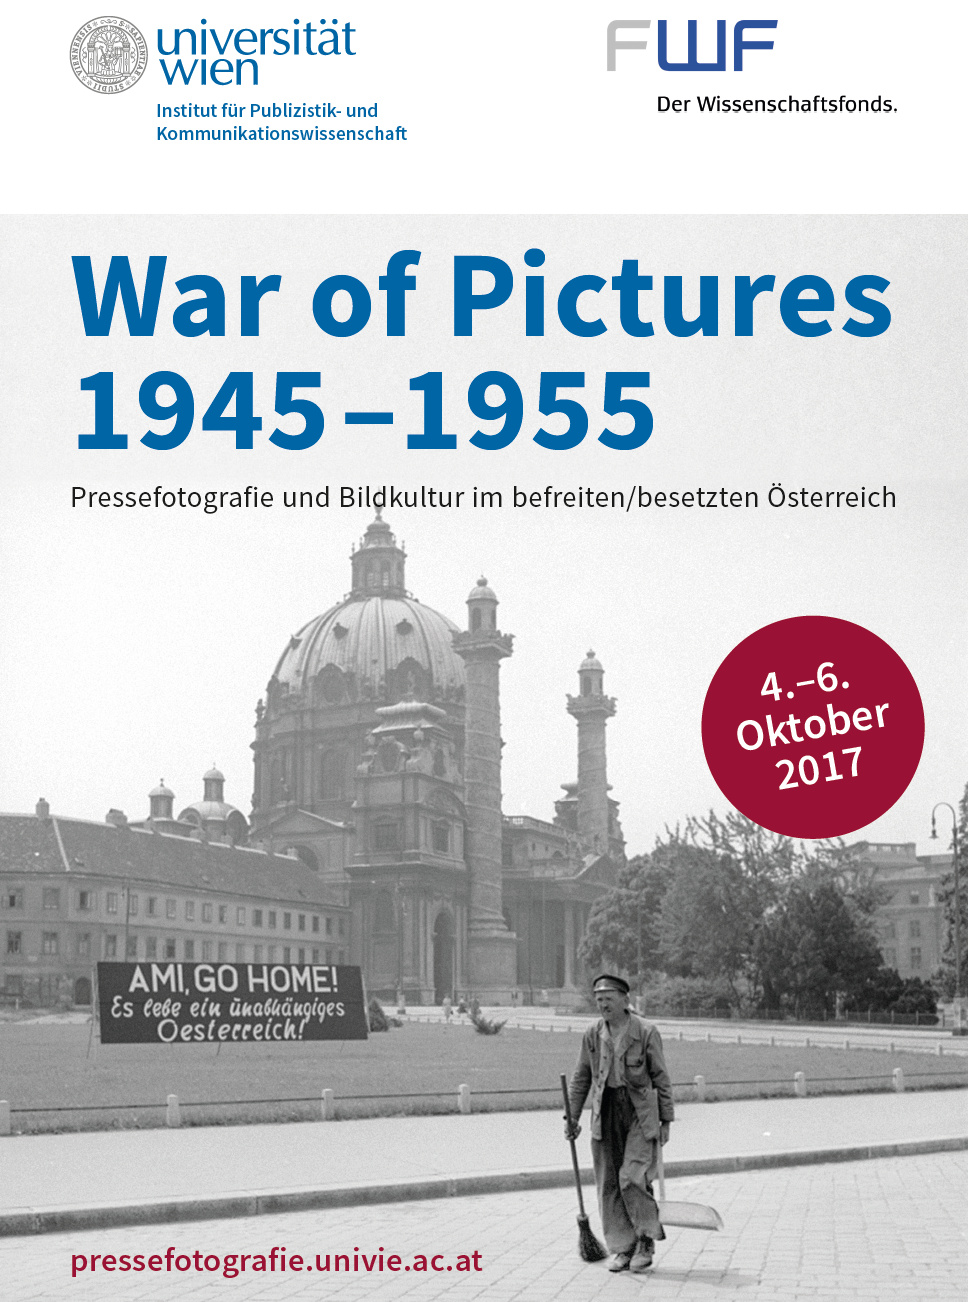 war of pictures_krammer_szeless_universität wien